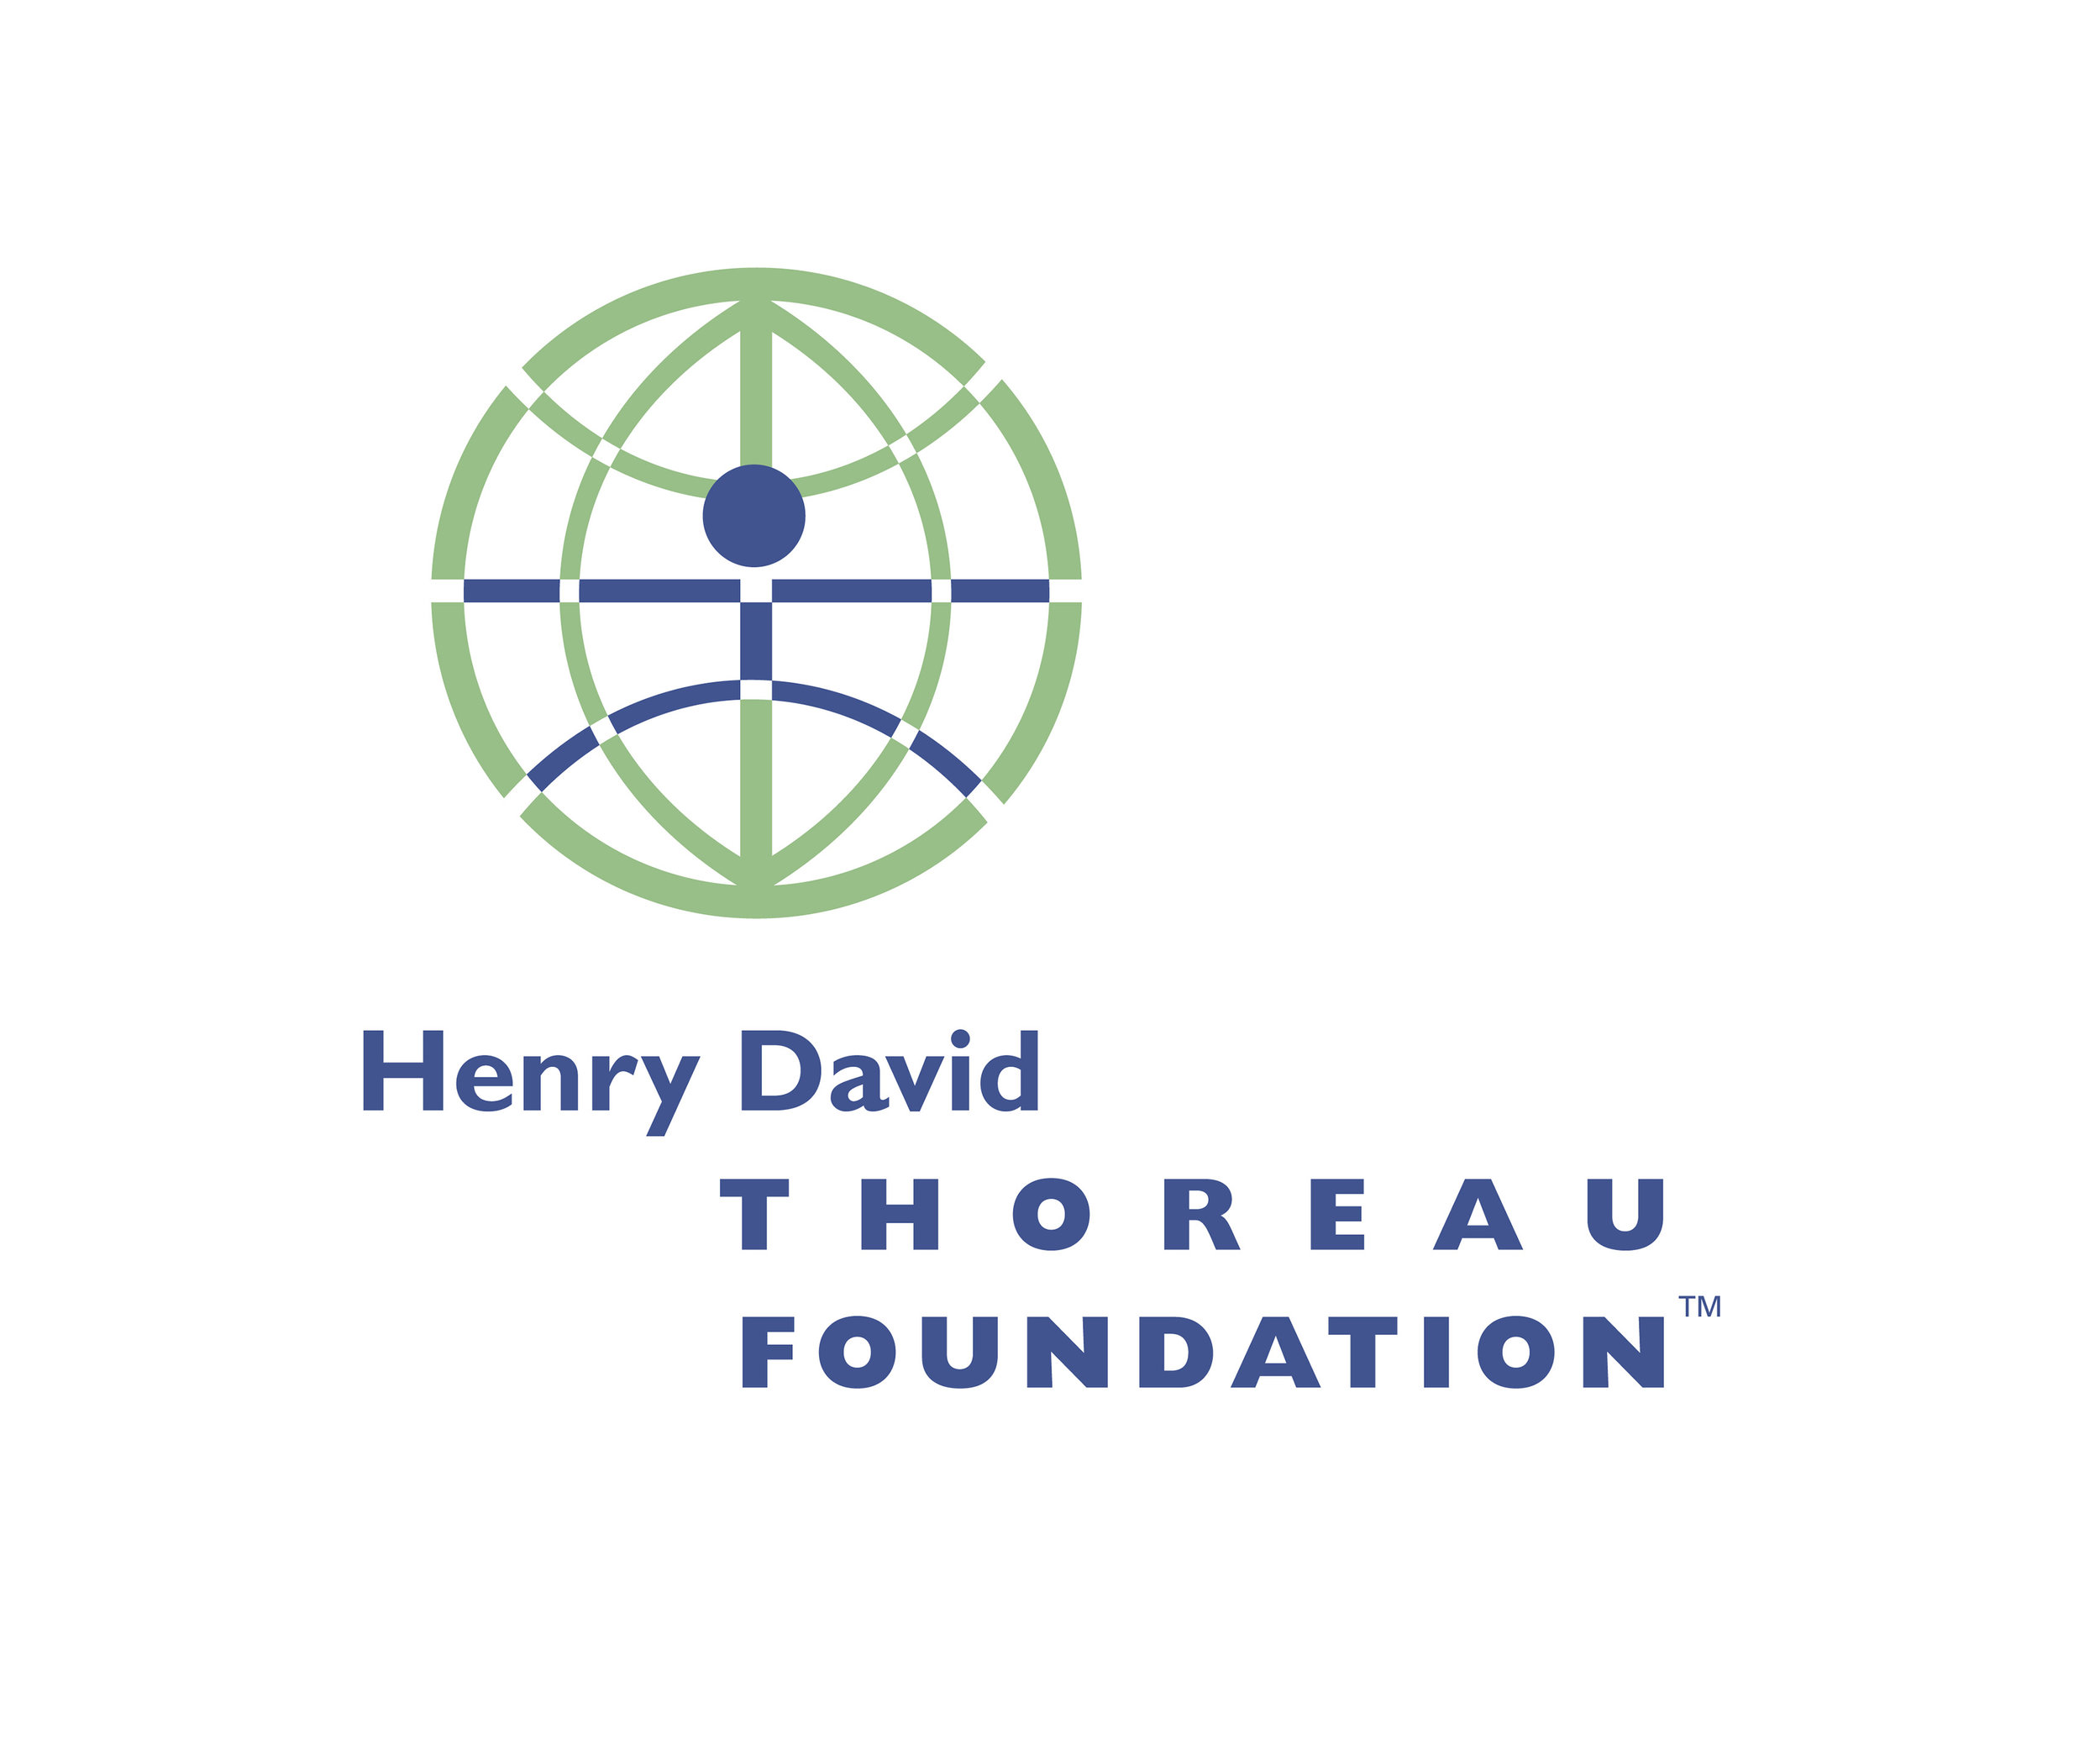 Henry David Thoreau Foundation